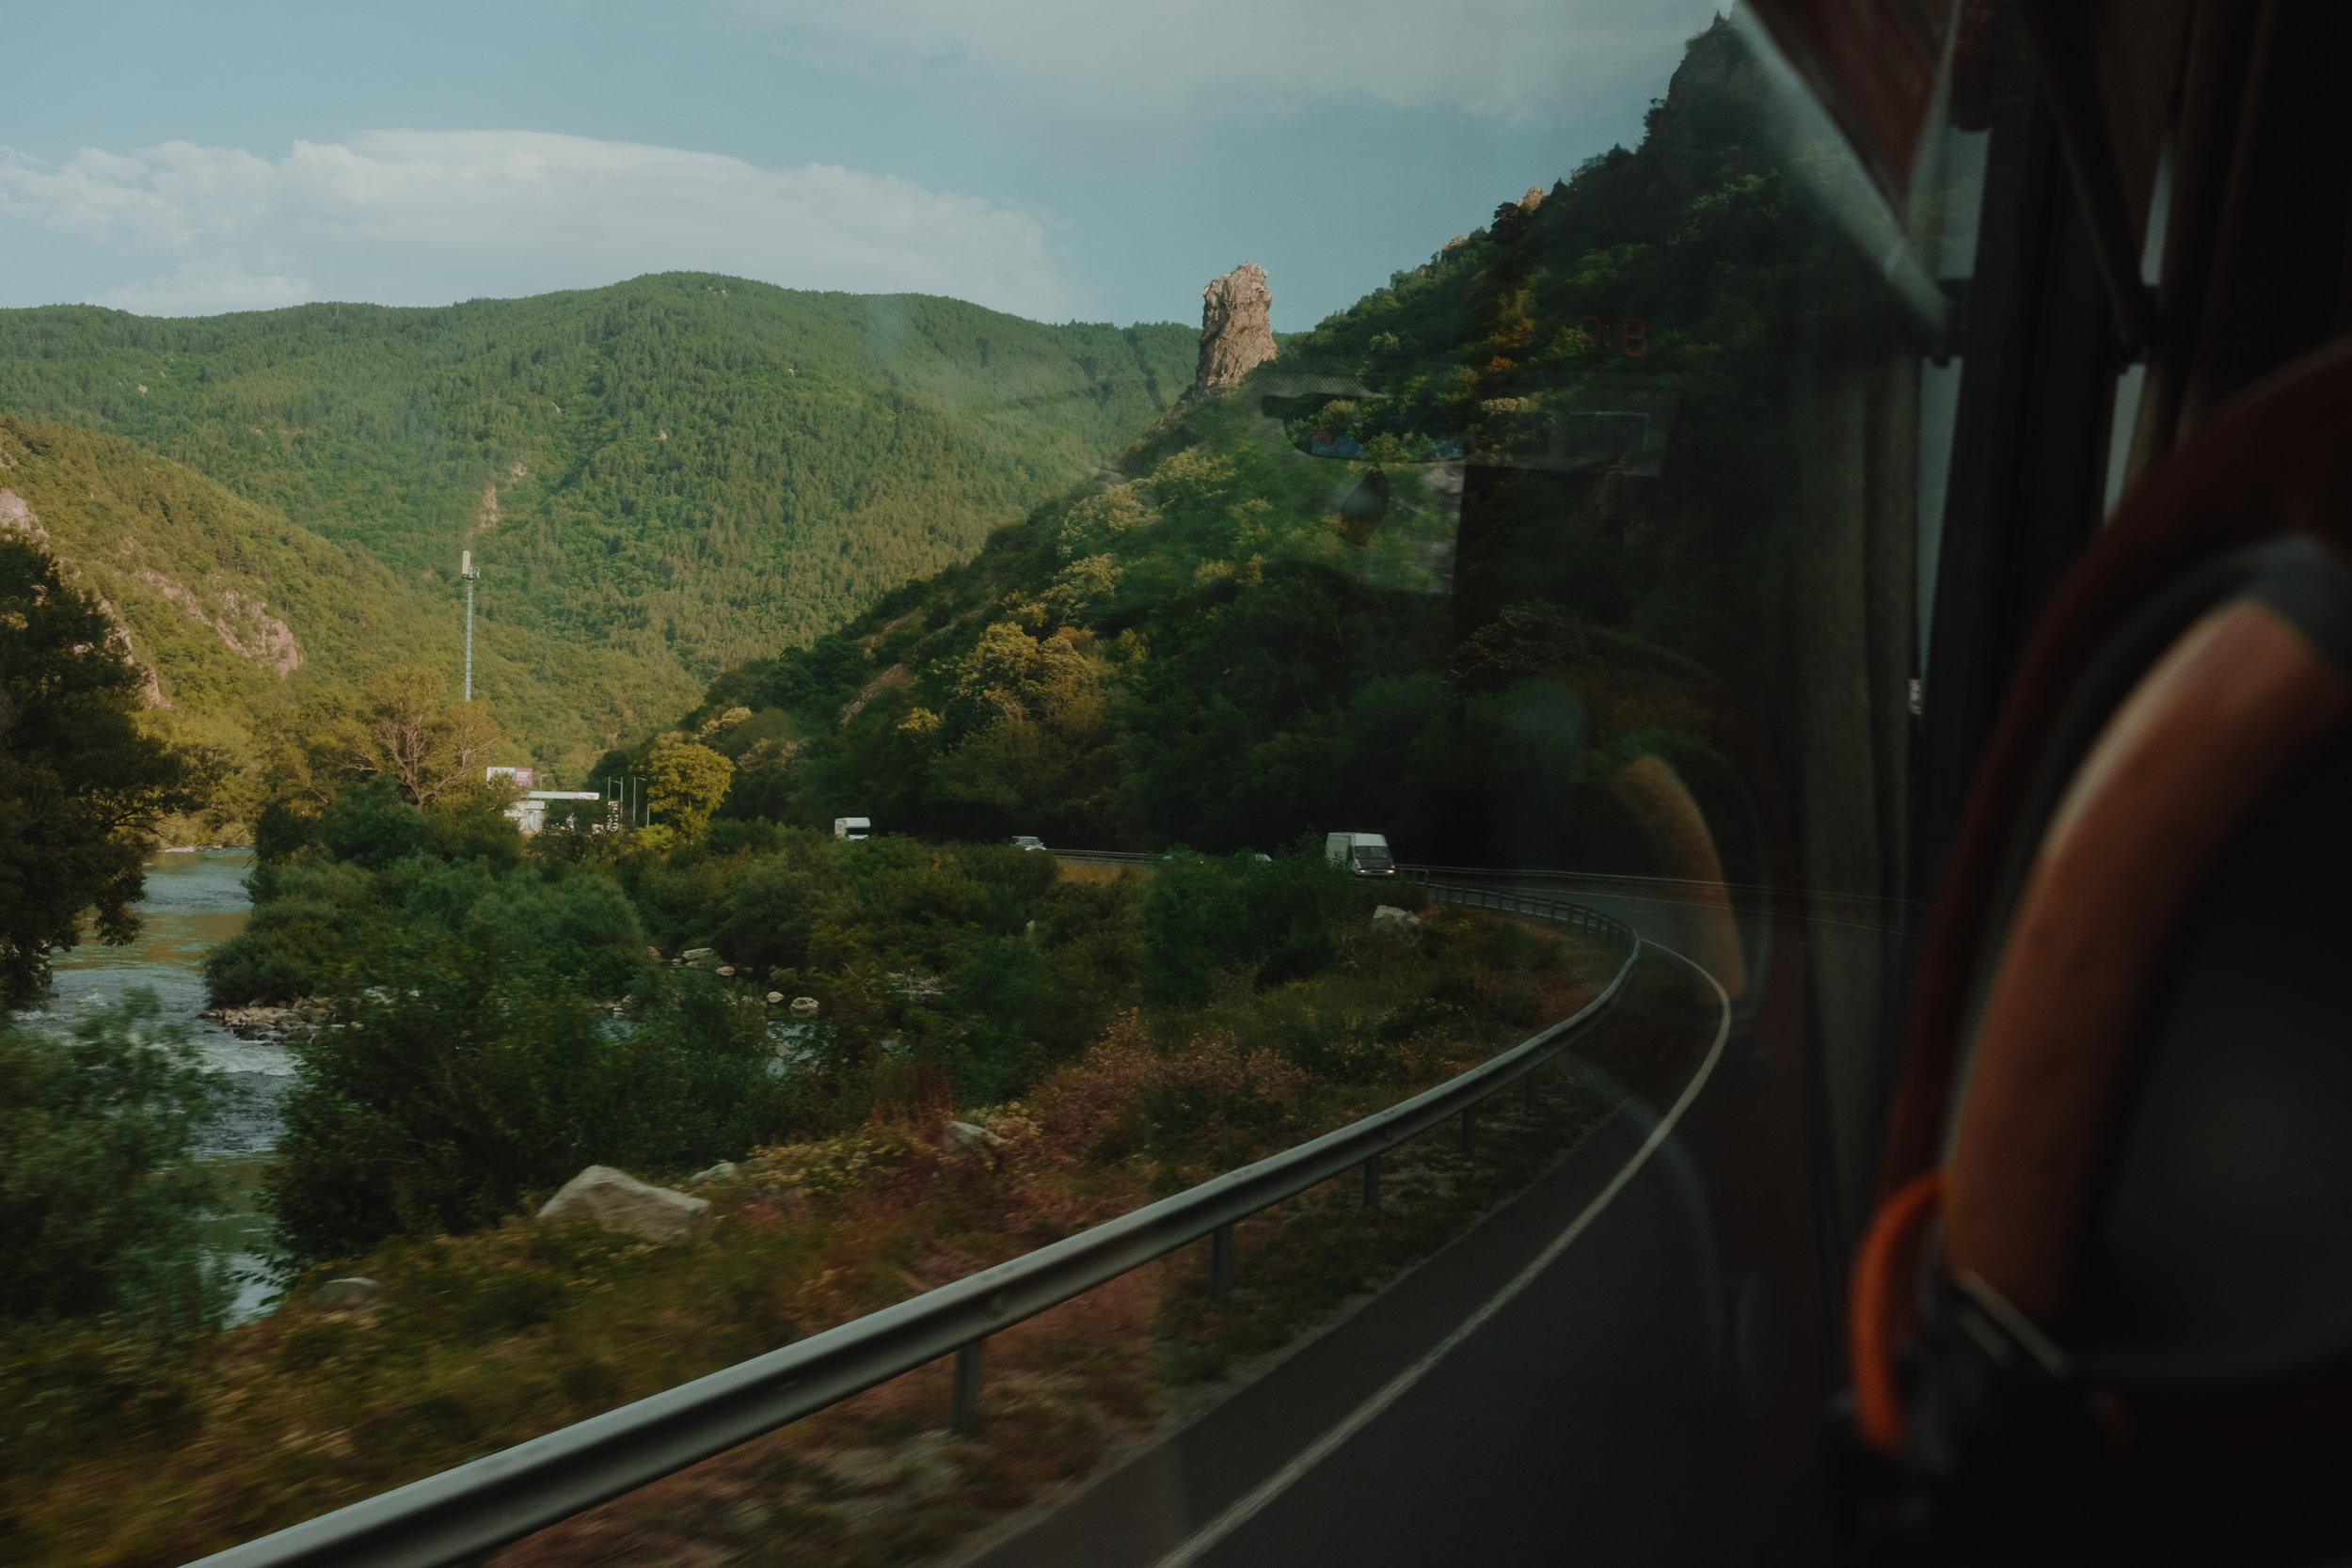 Bulgaria by road